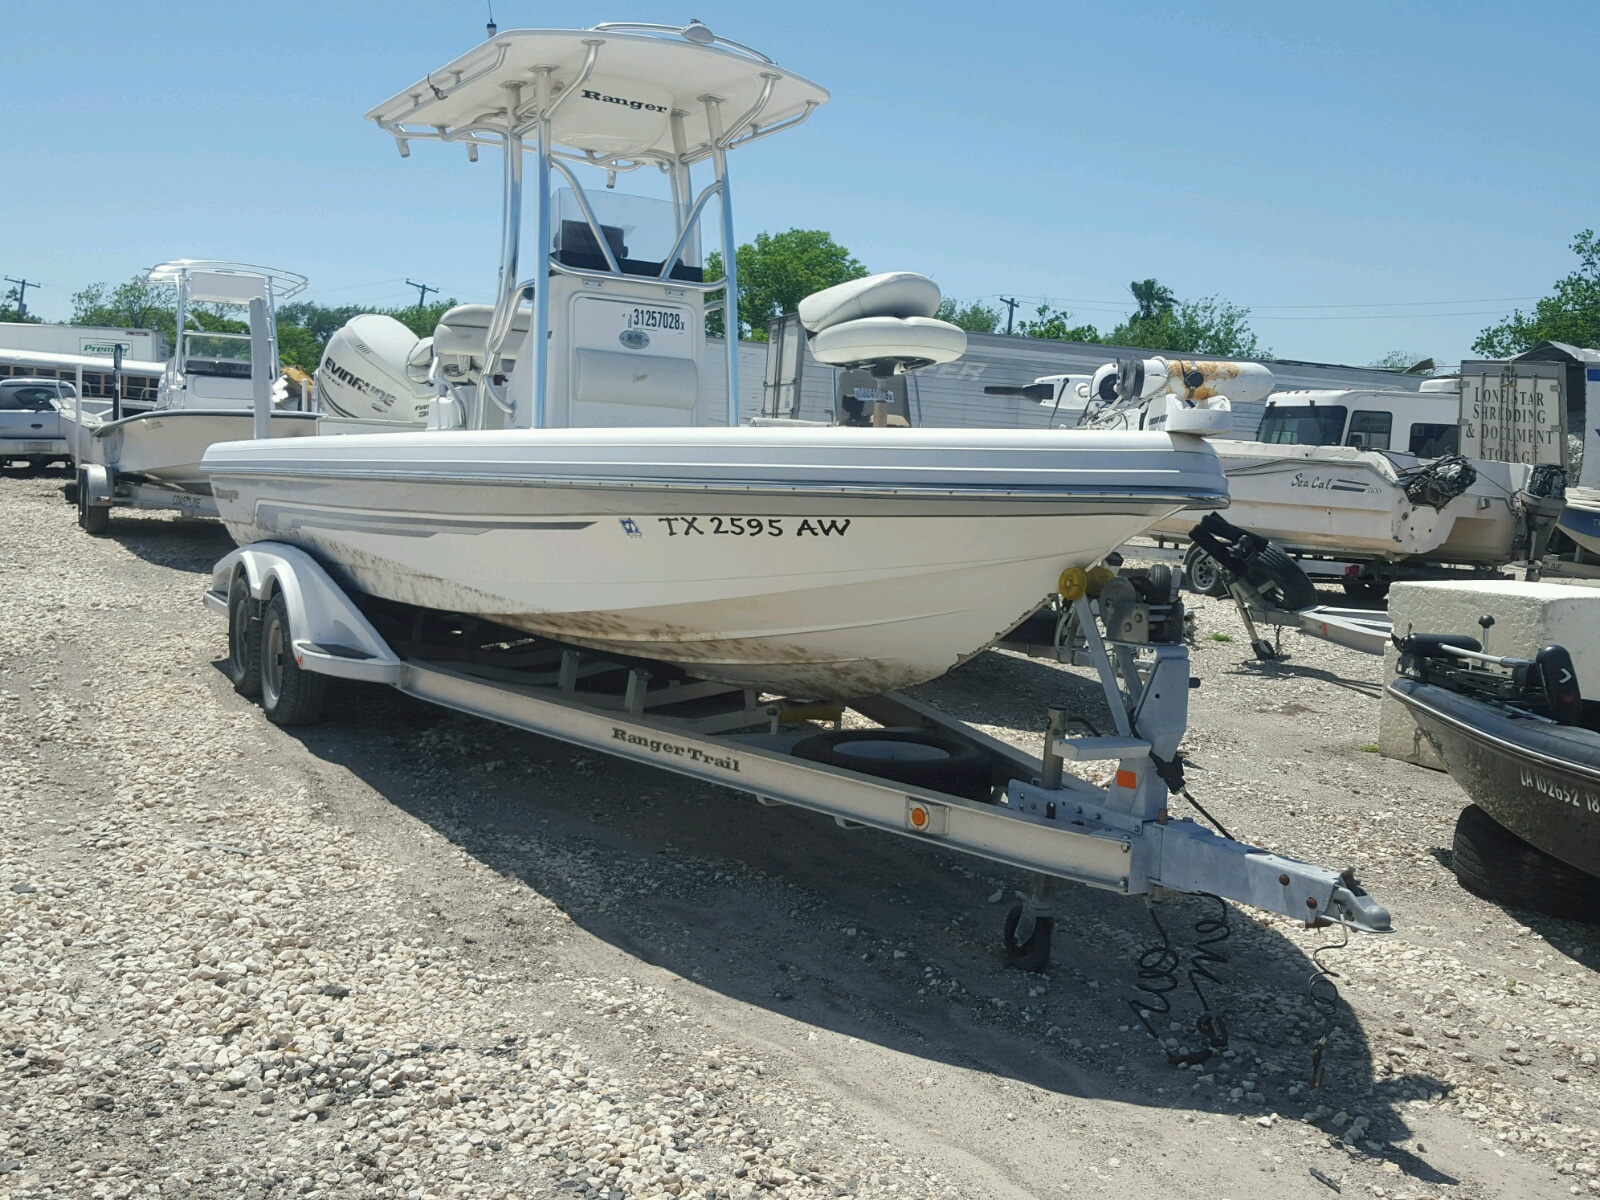 Salvage 2008 Range Rover BOAT for sale